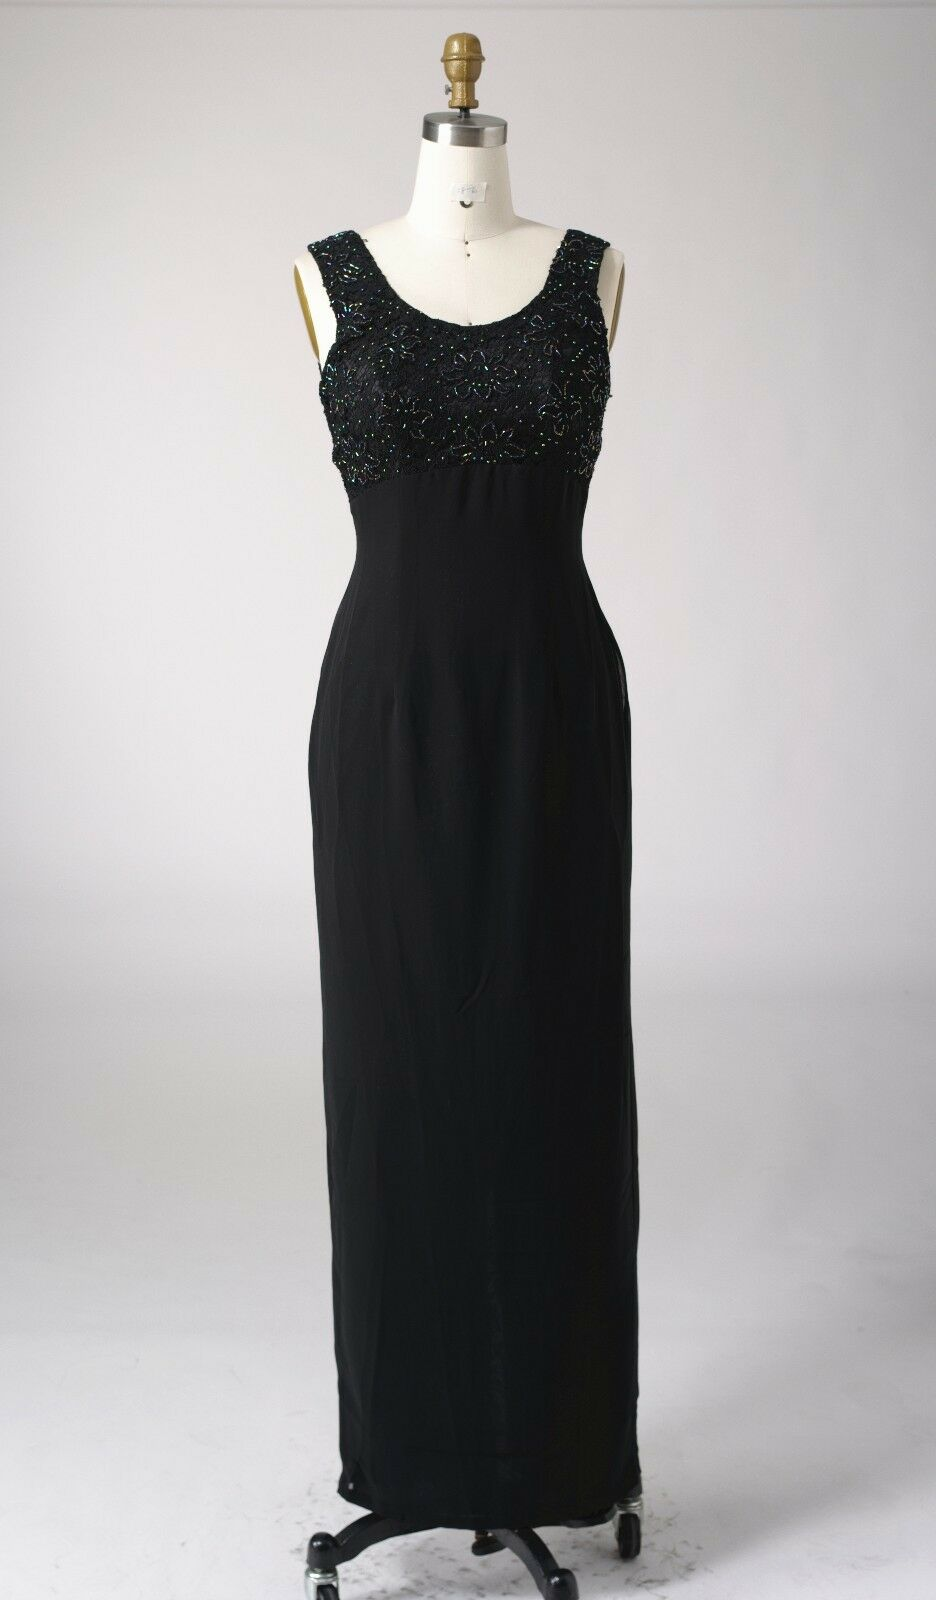 Size 8 Ladies' Lace Beads Sequins Cocktail Evening Formal Party Long Maxi Dress